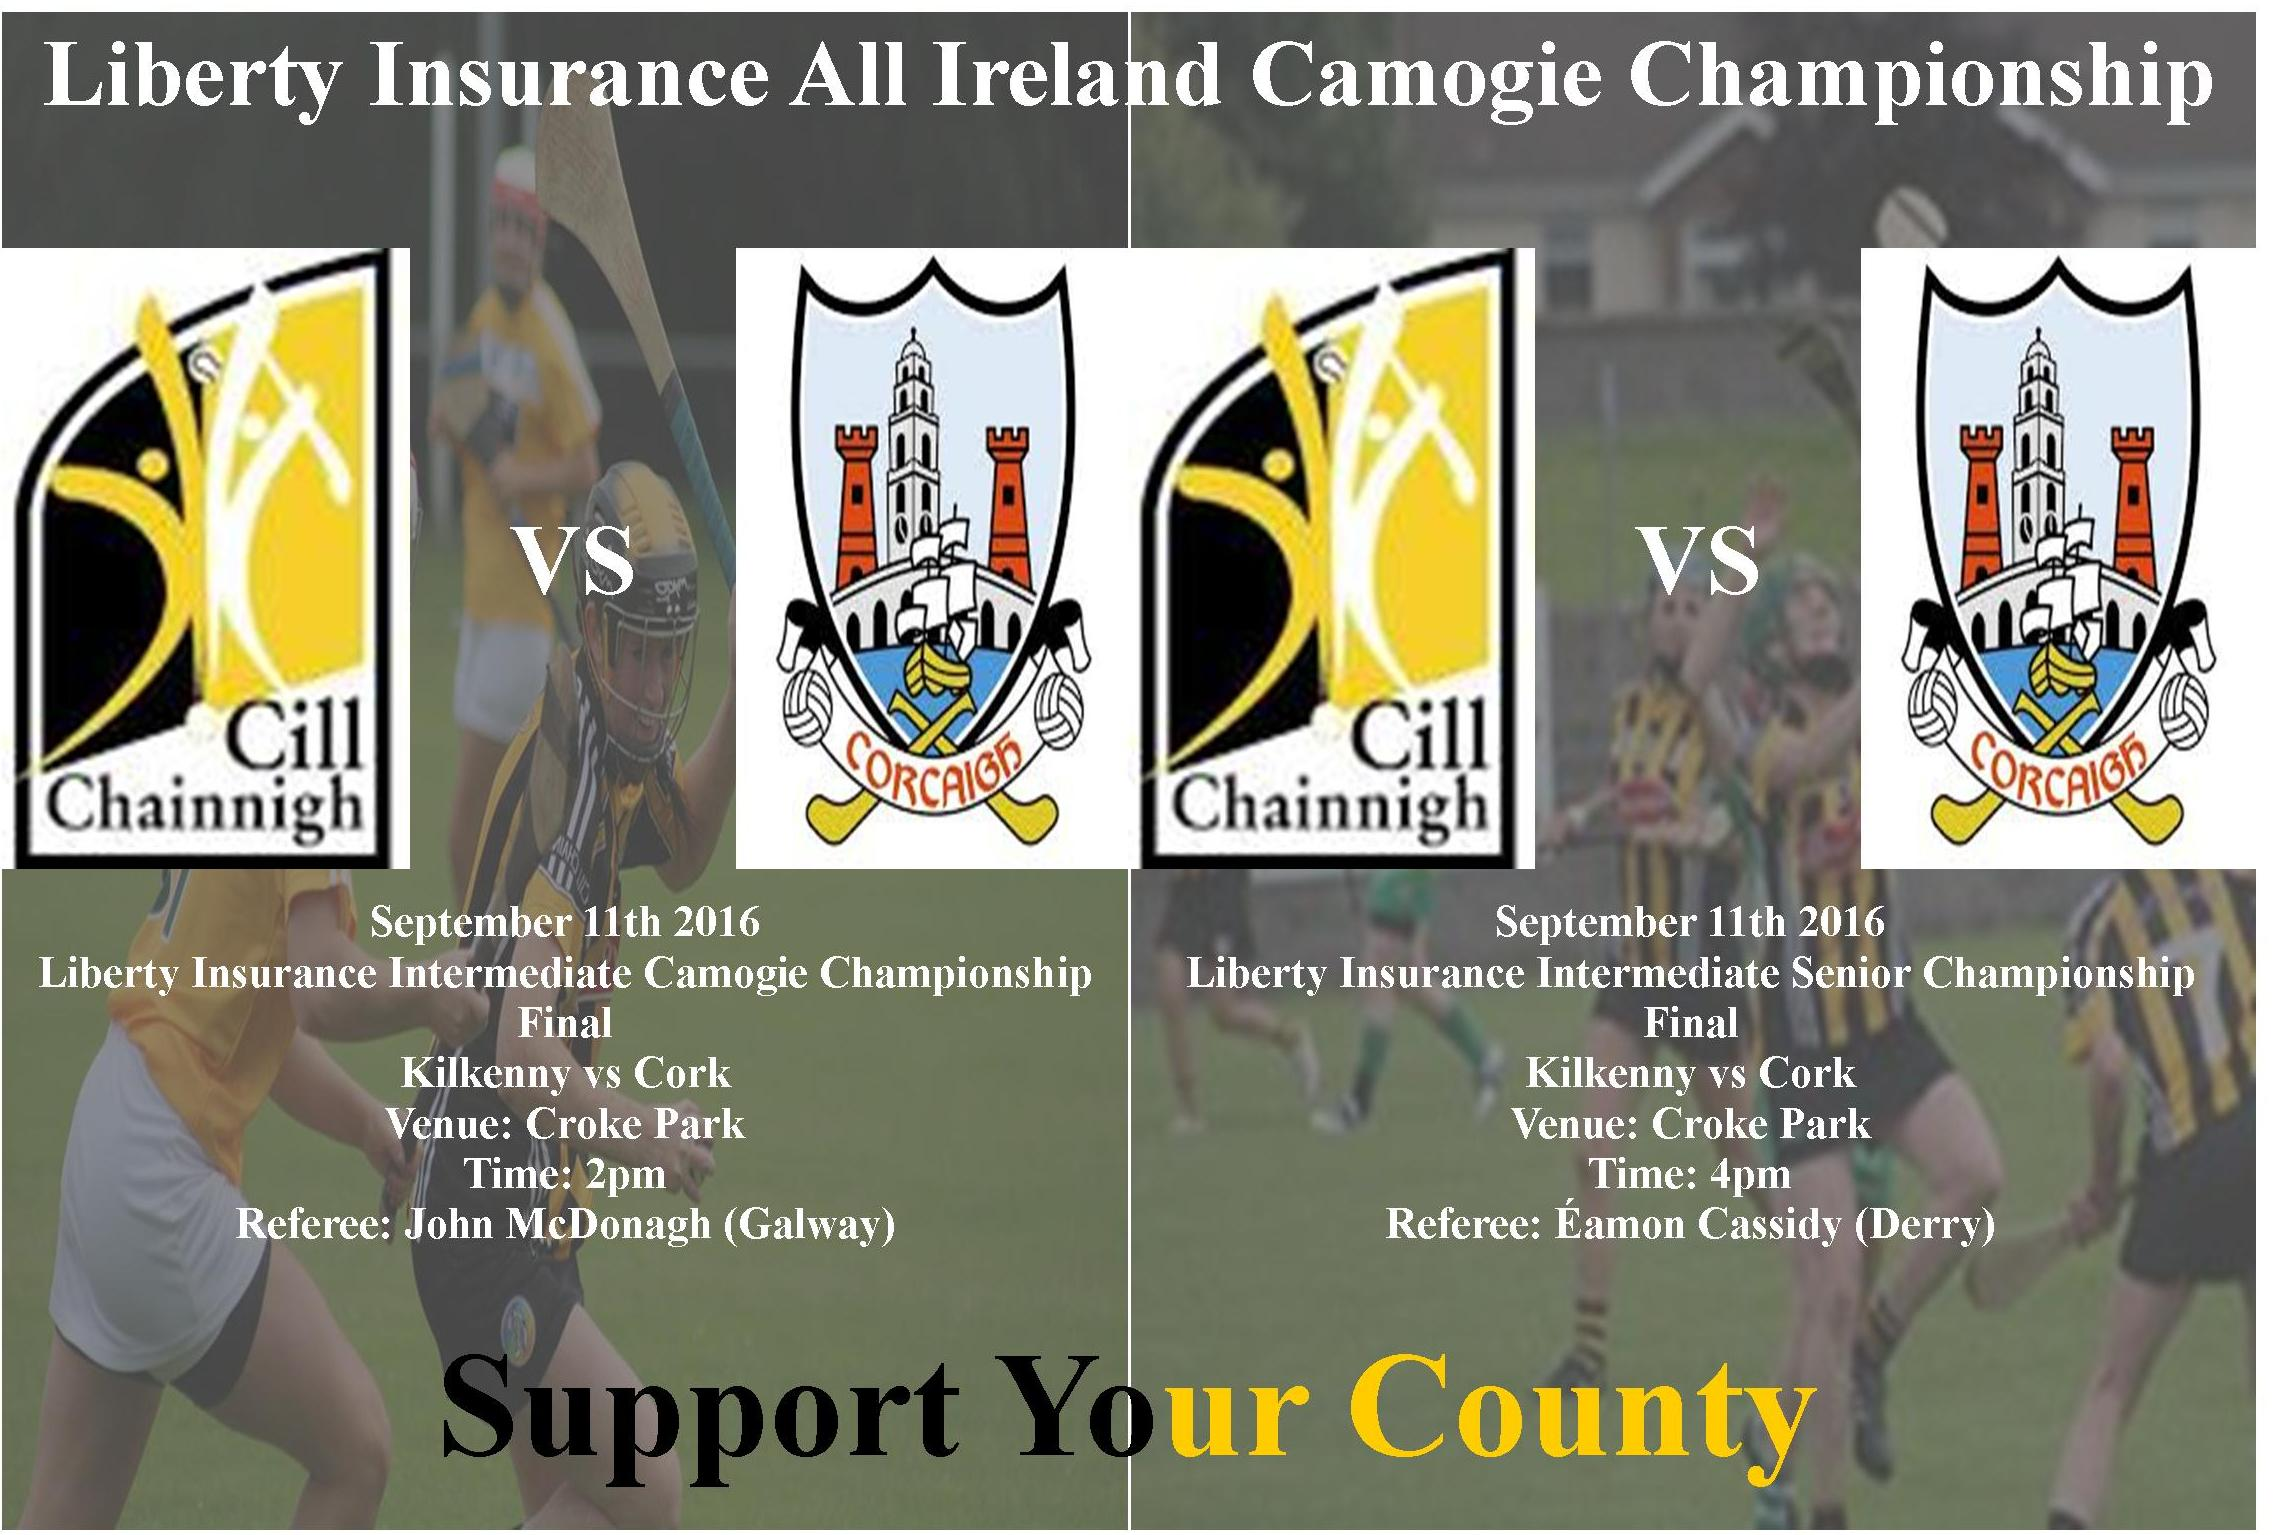 All Ireland Senior & Intermediate Camogie Championship Semi Final Kilkenny vs Cork